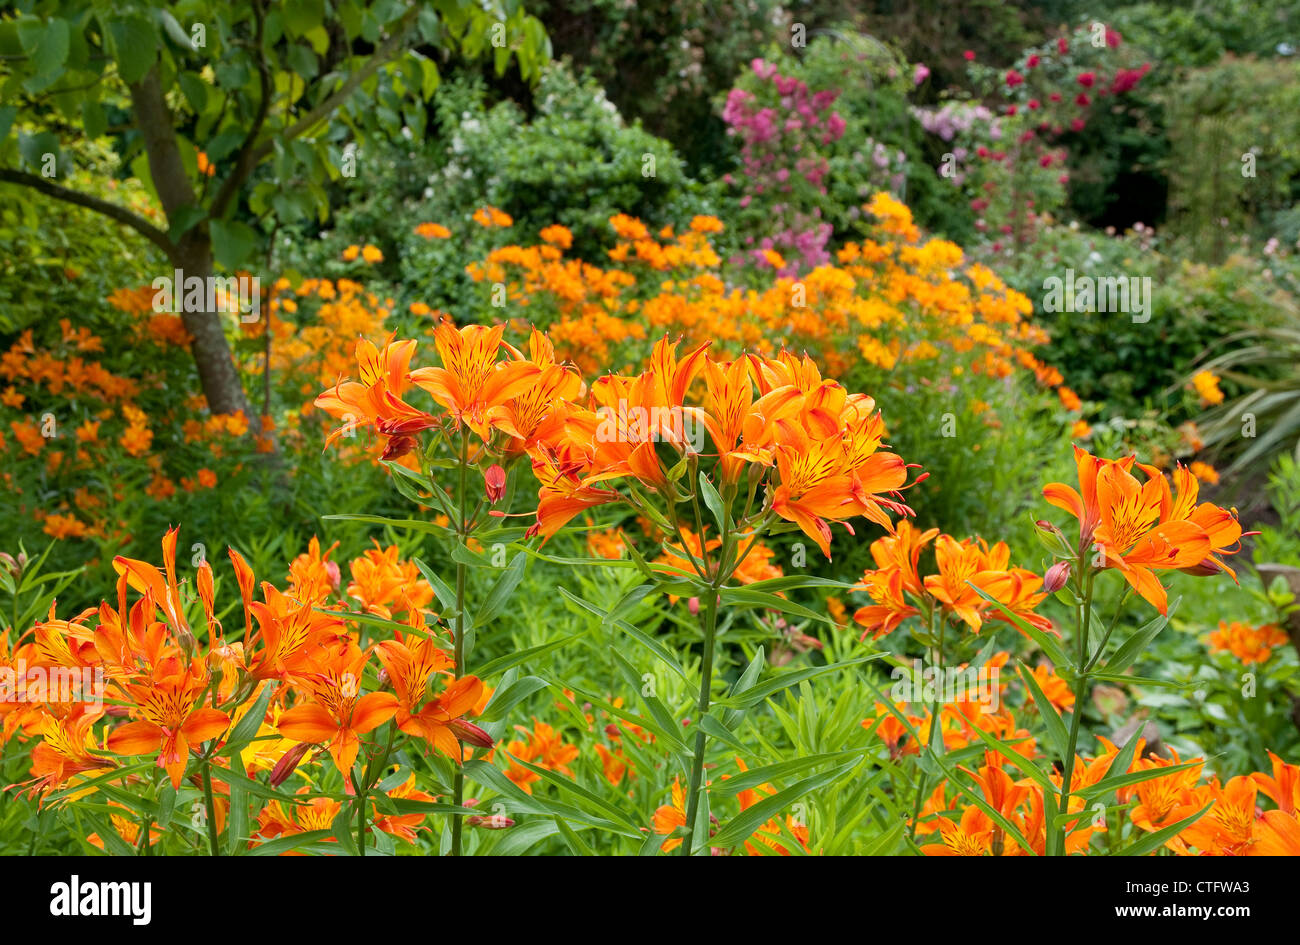 Tiger Lily Flowers In Garden Stock Photo 49521643 Alamy